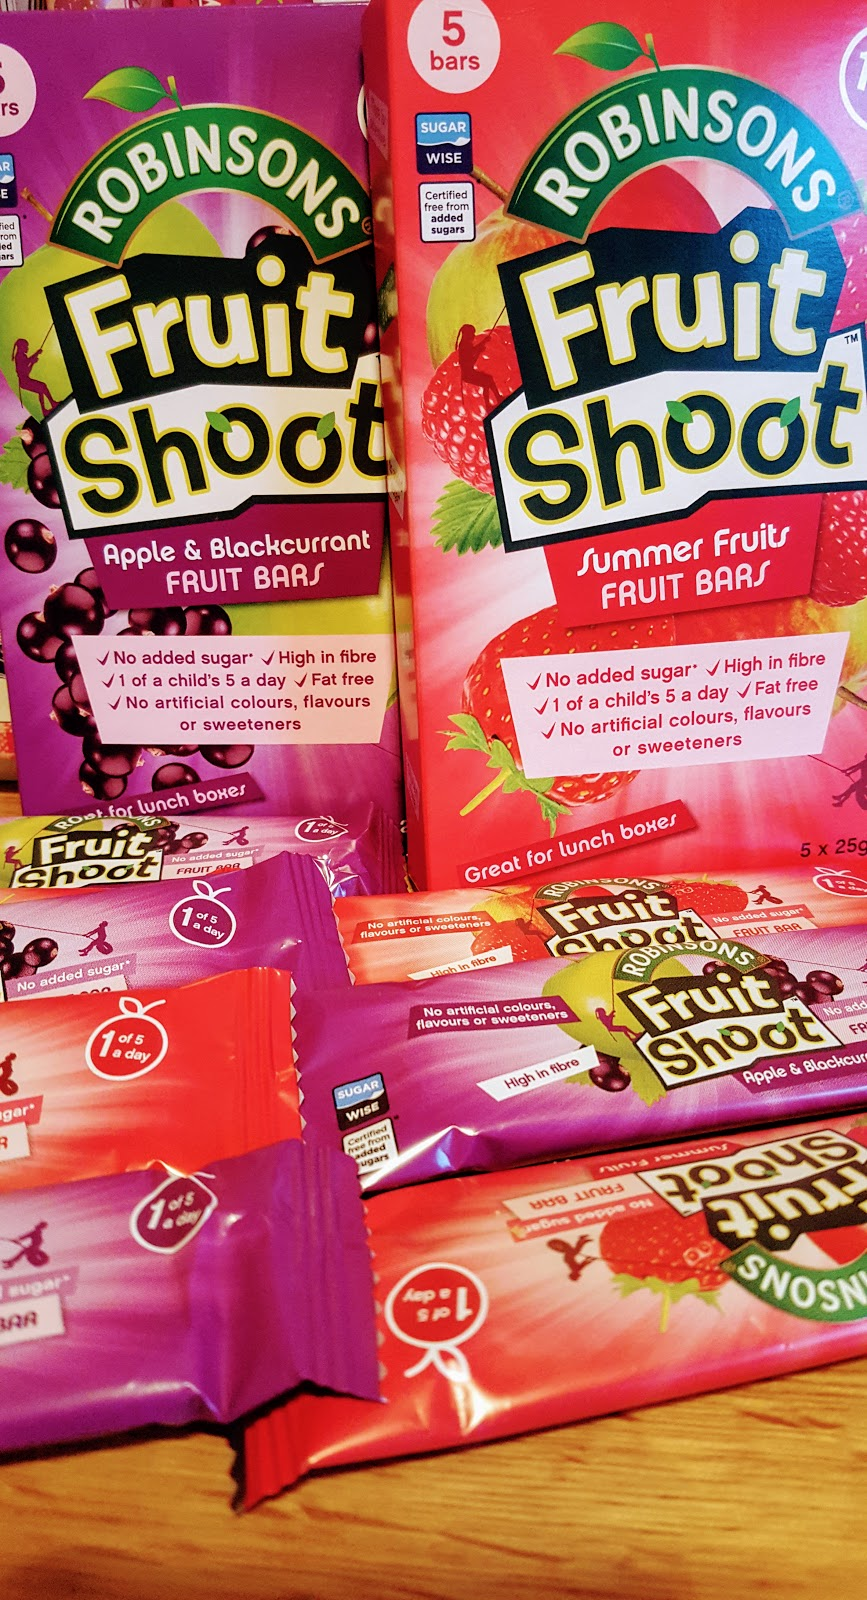 New Fruit Shoot Fruit Bars That Are Also Gluten-Free